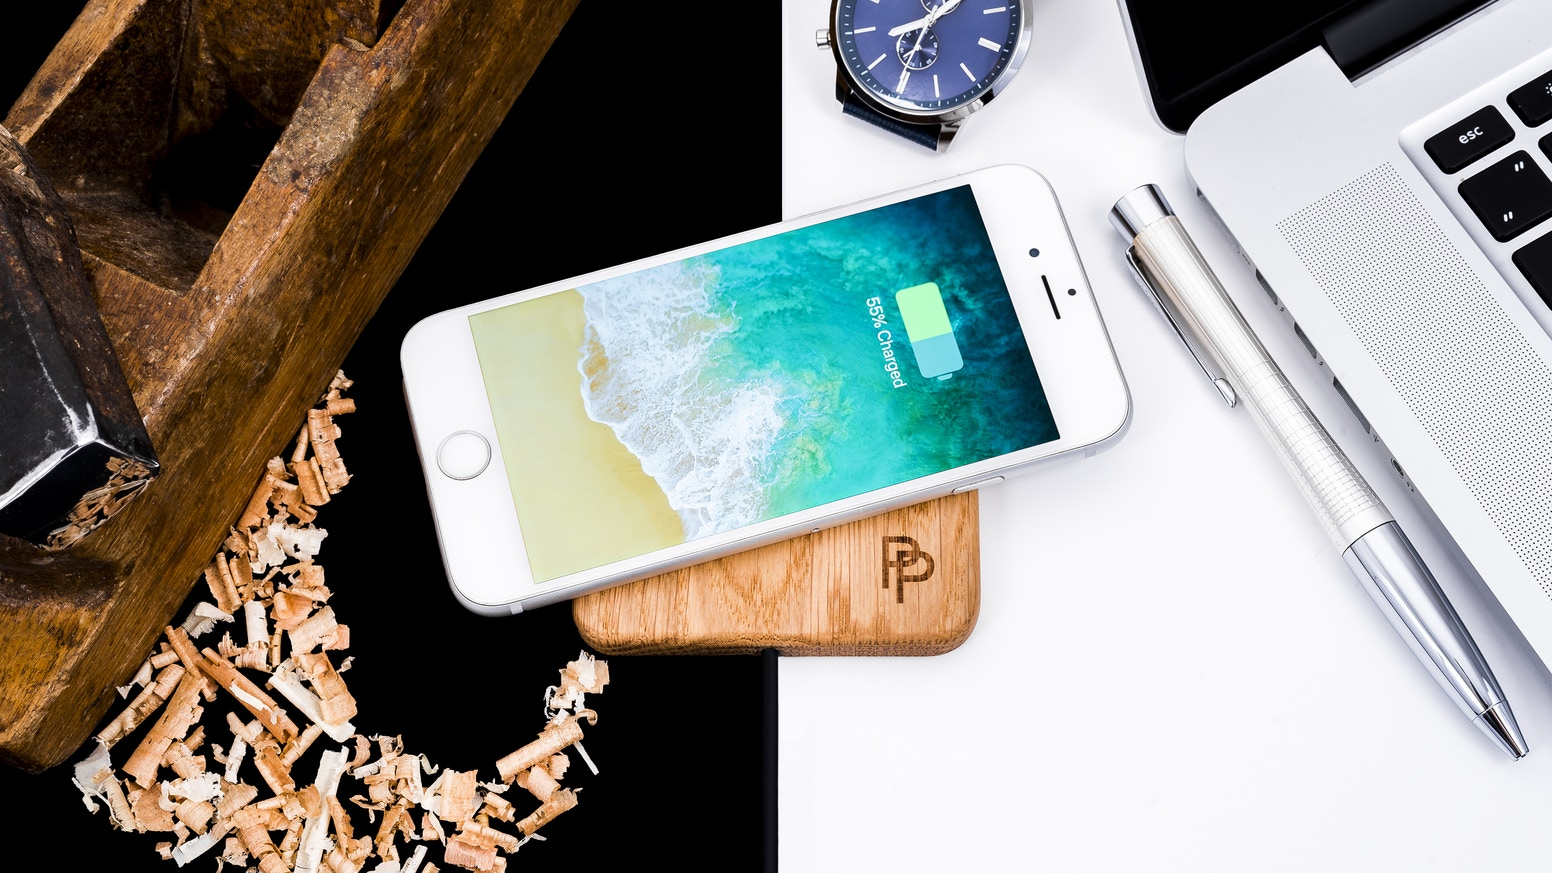 The wireless handcrafted wooden charging station just place your phone on the top and let